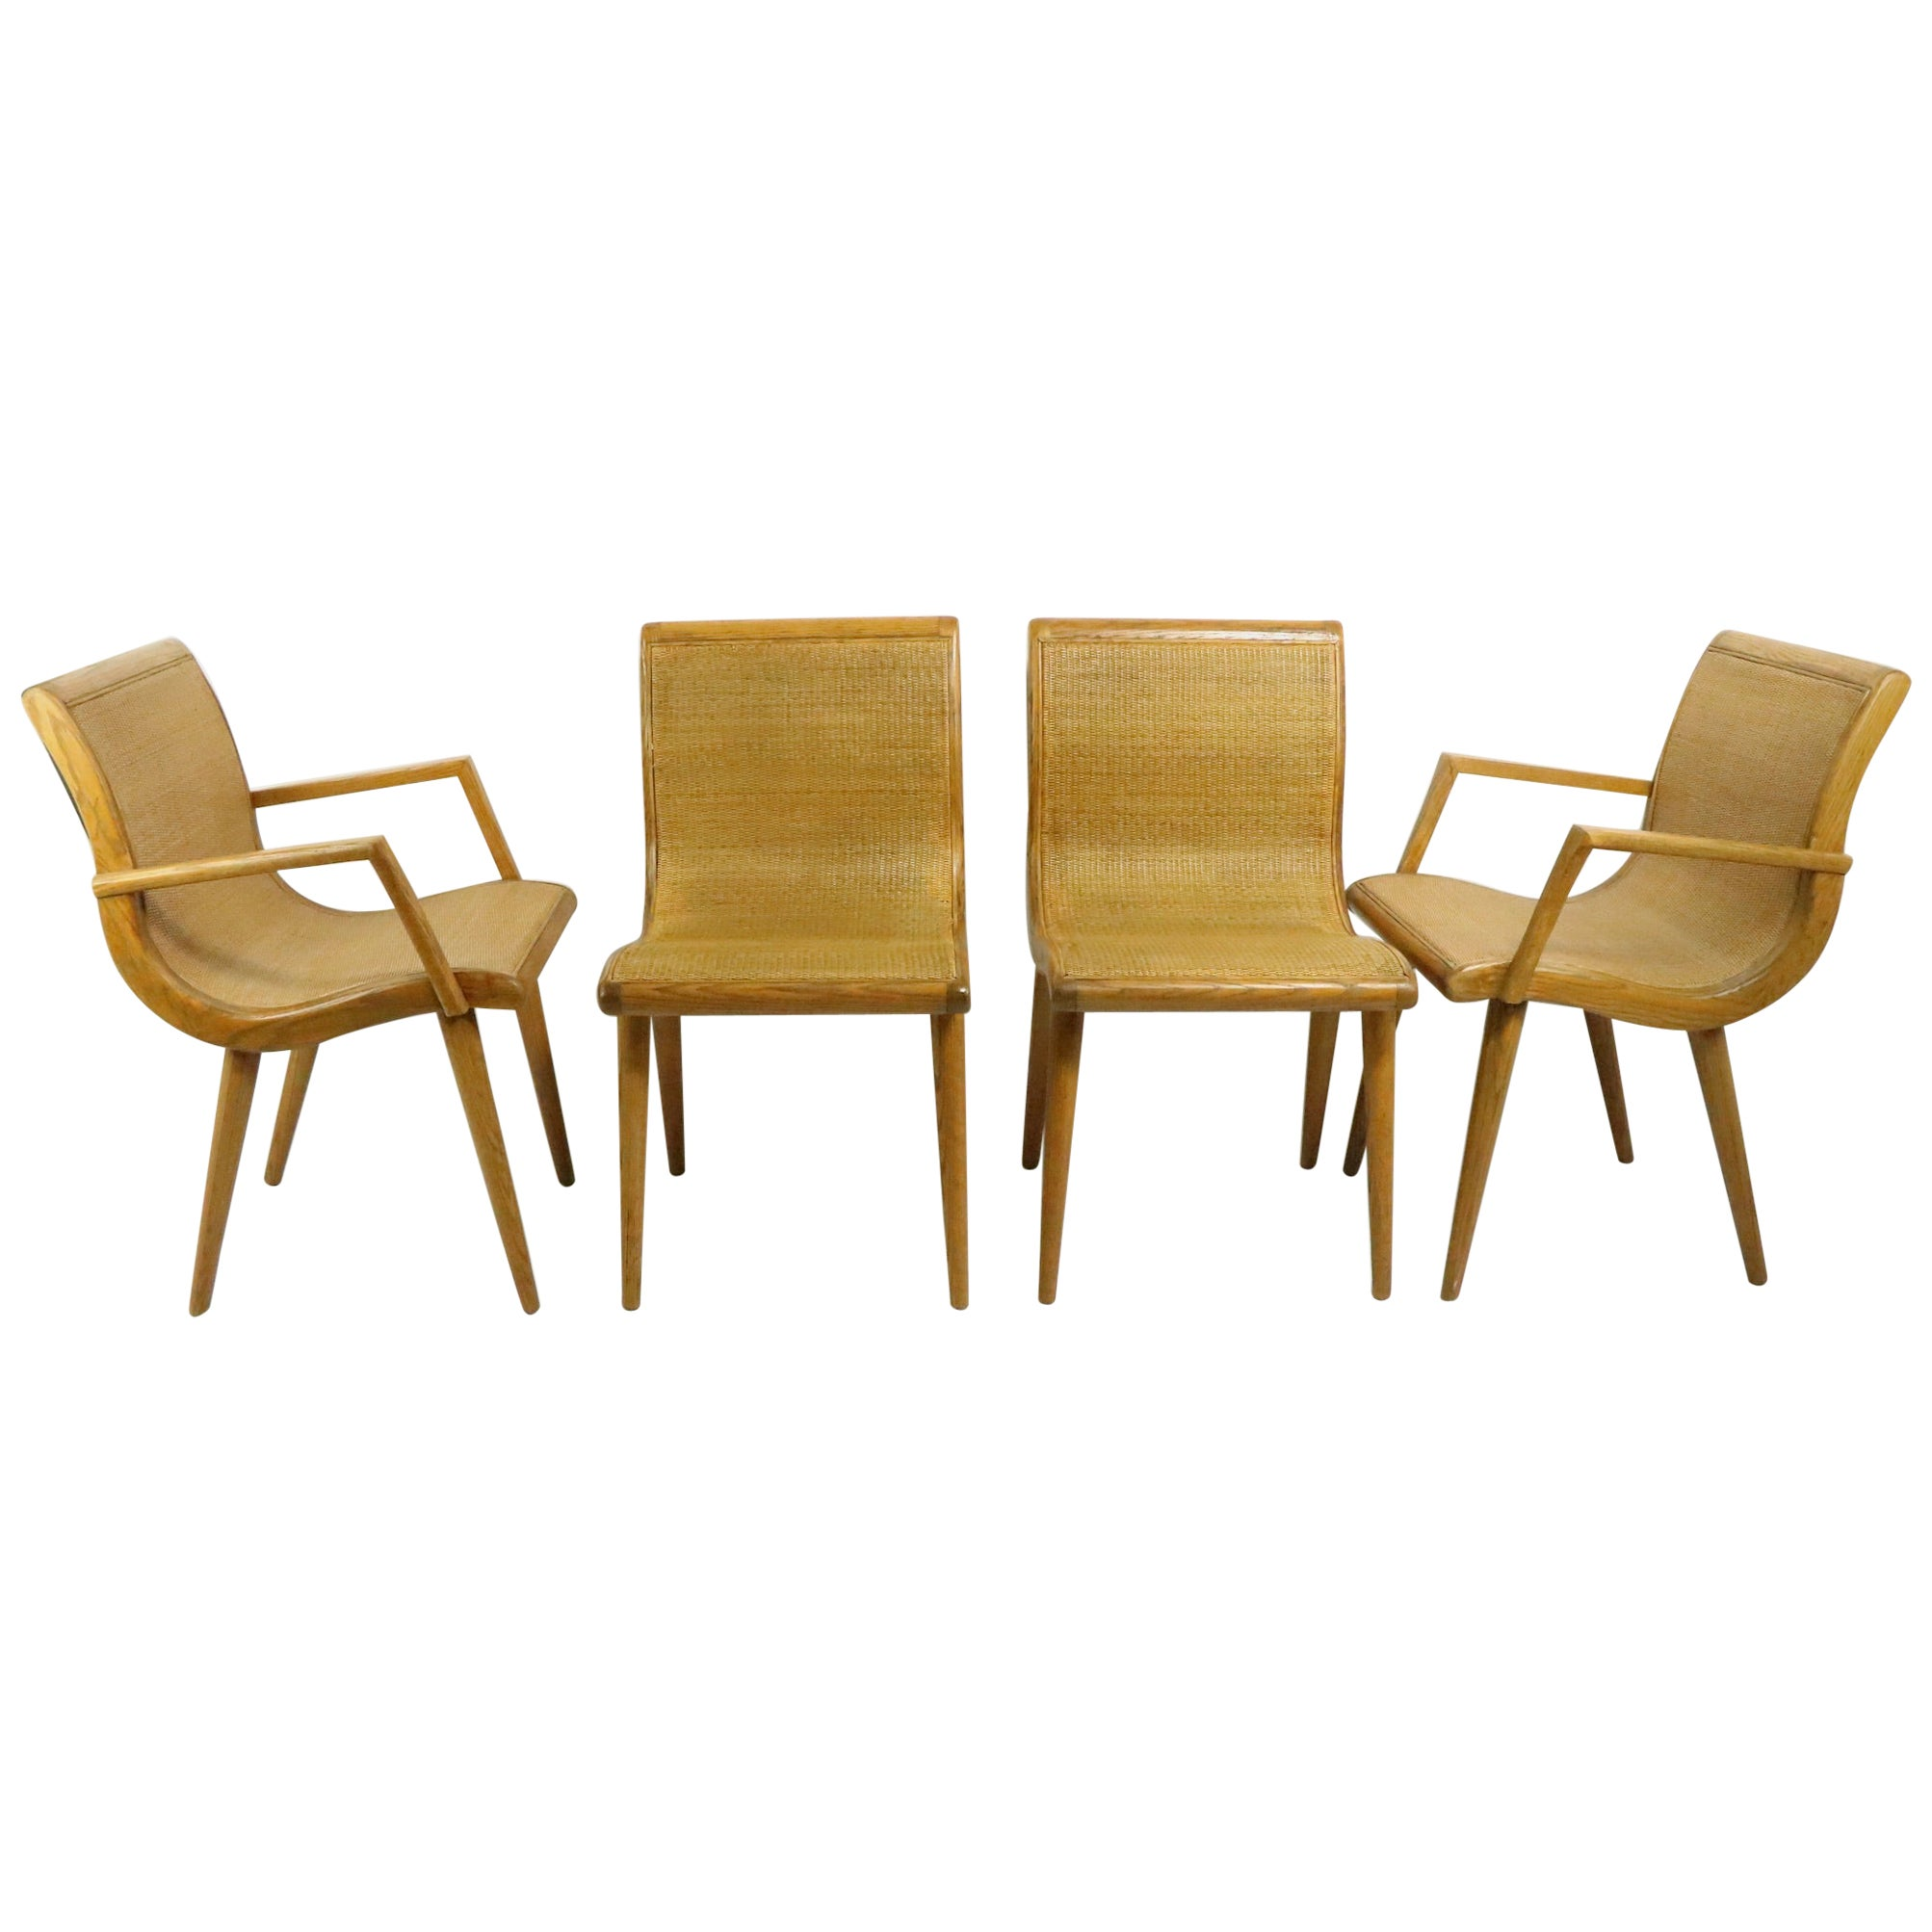 Set of Four Dining Chairs by Jack Van der Molen Americana Casual for Jamestown